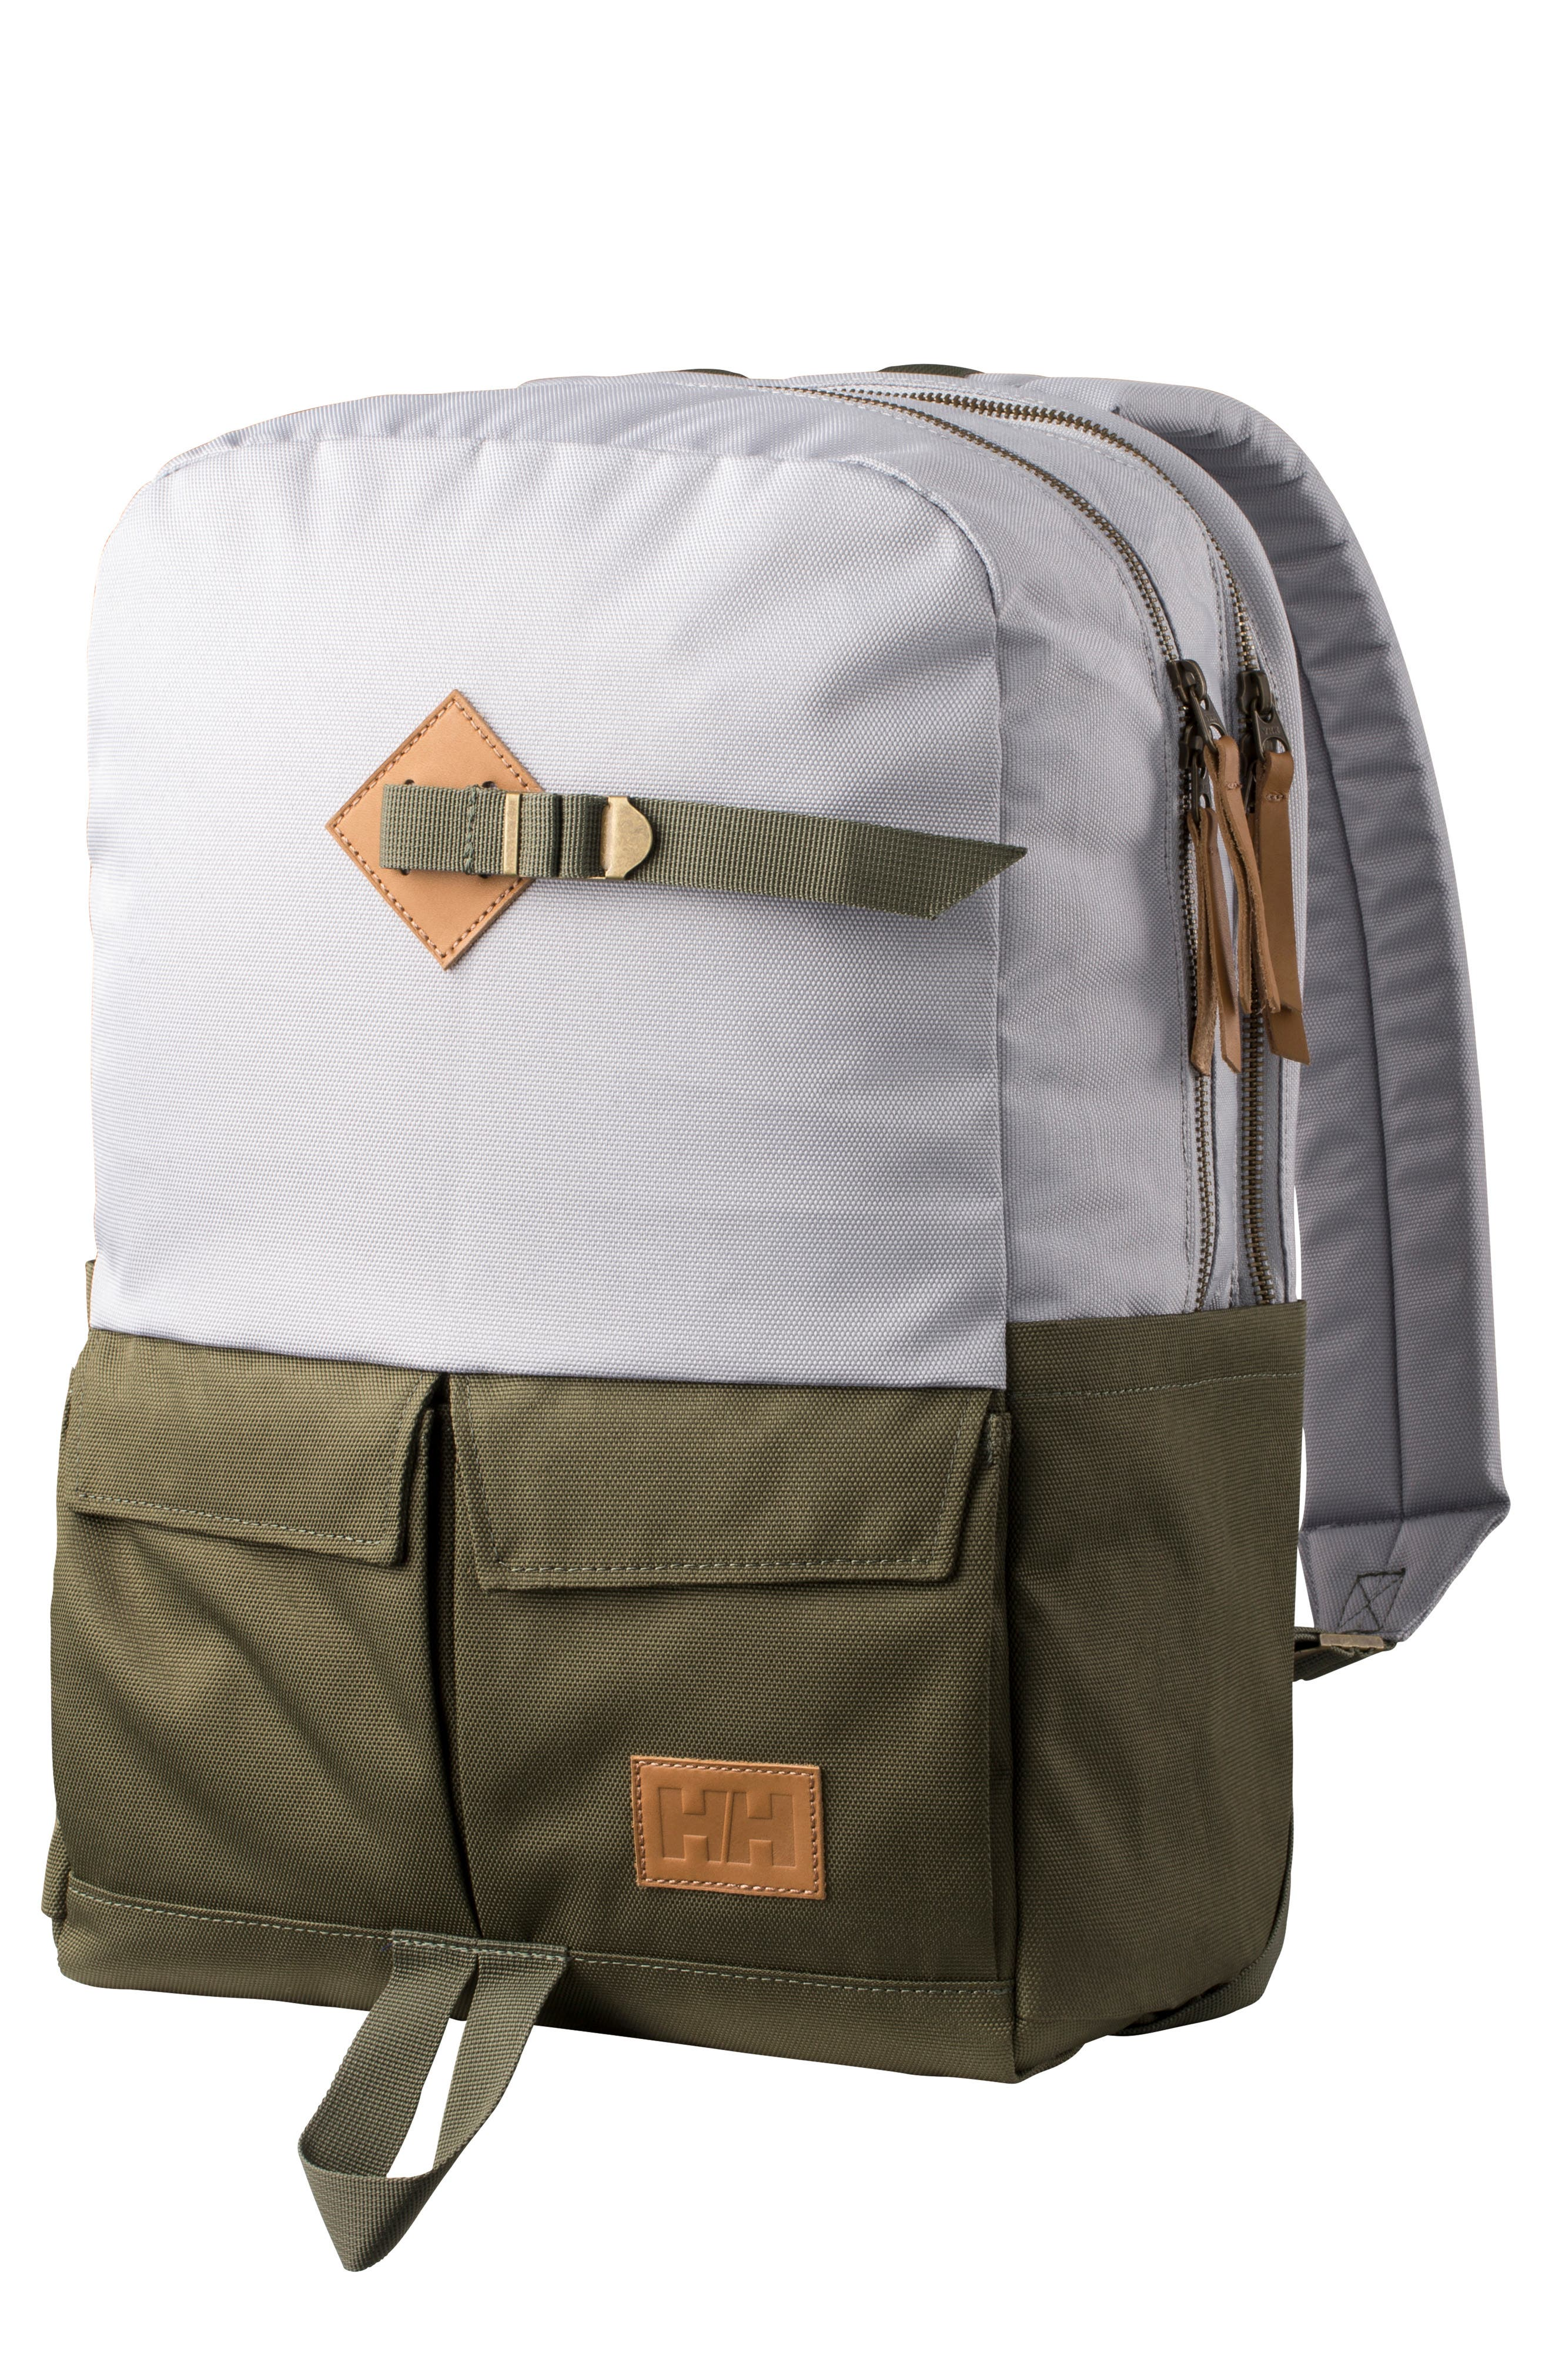 Helly Hansen Bergen Backpack - Green